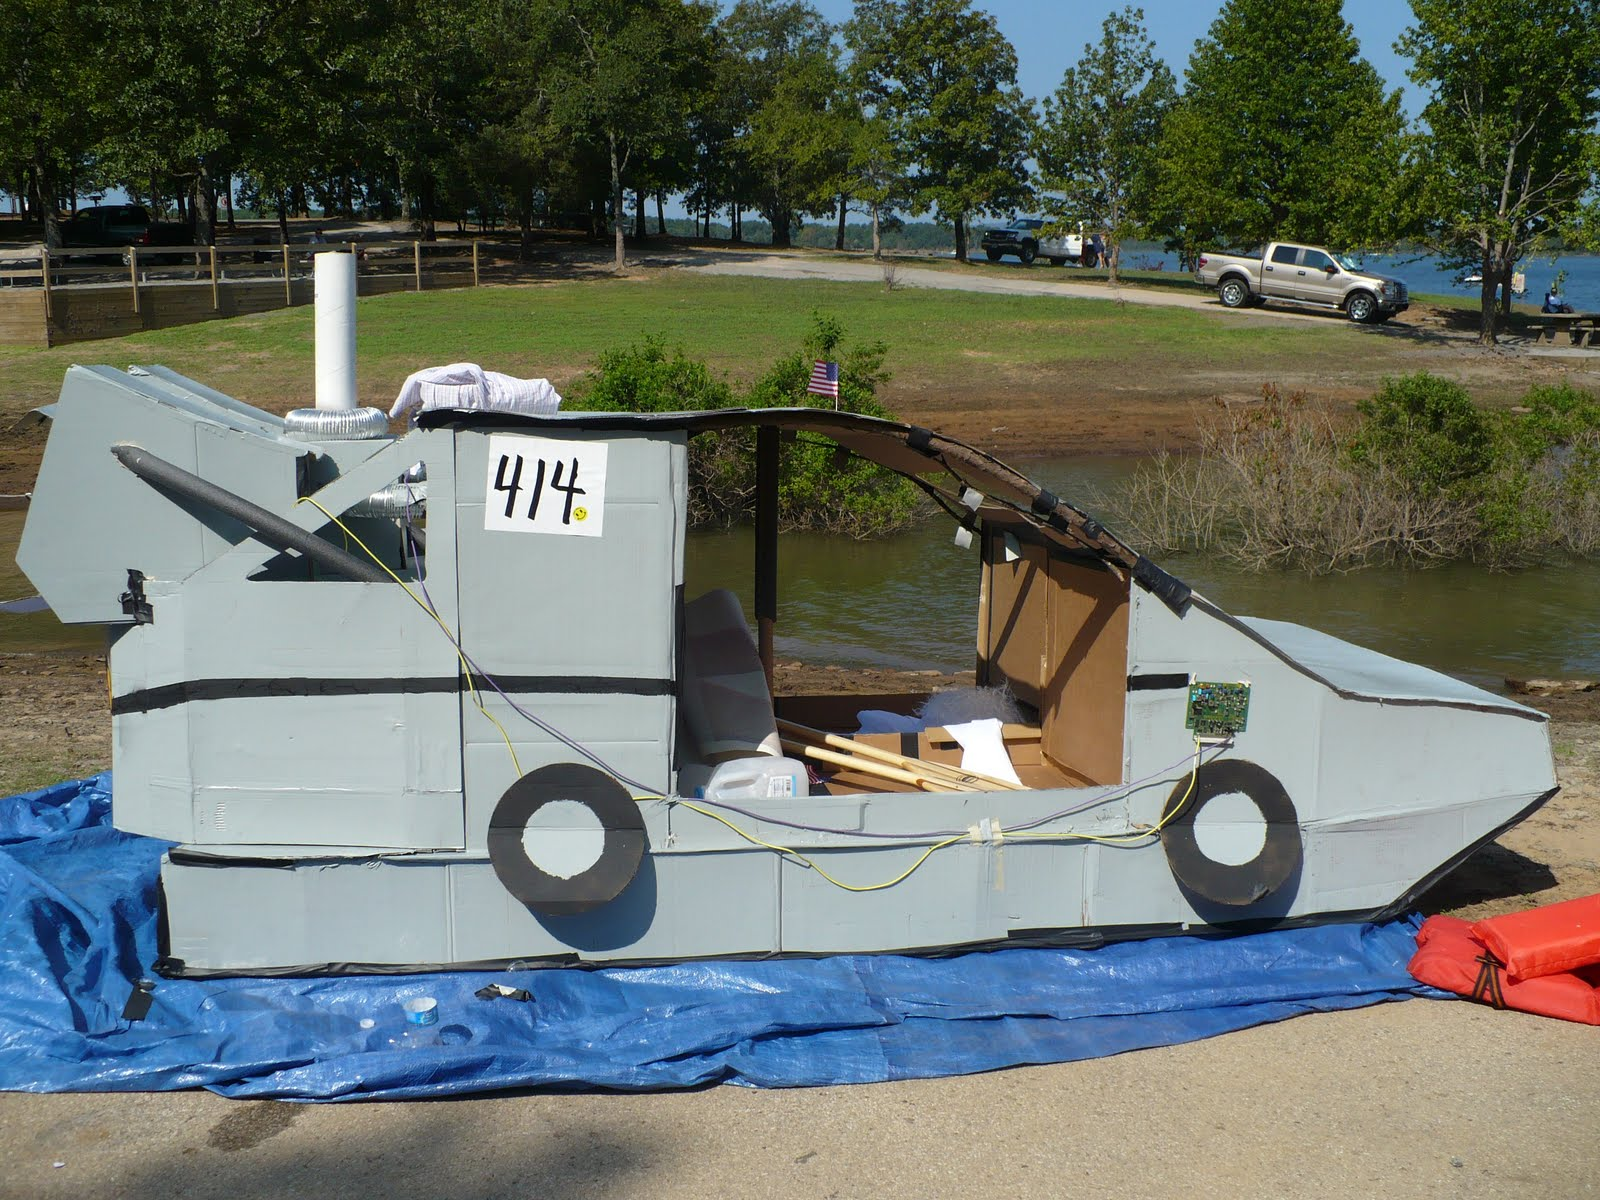 The Little Things Cardboard Boat Races